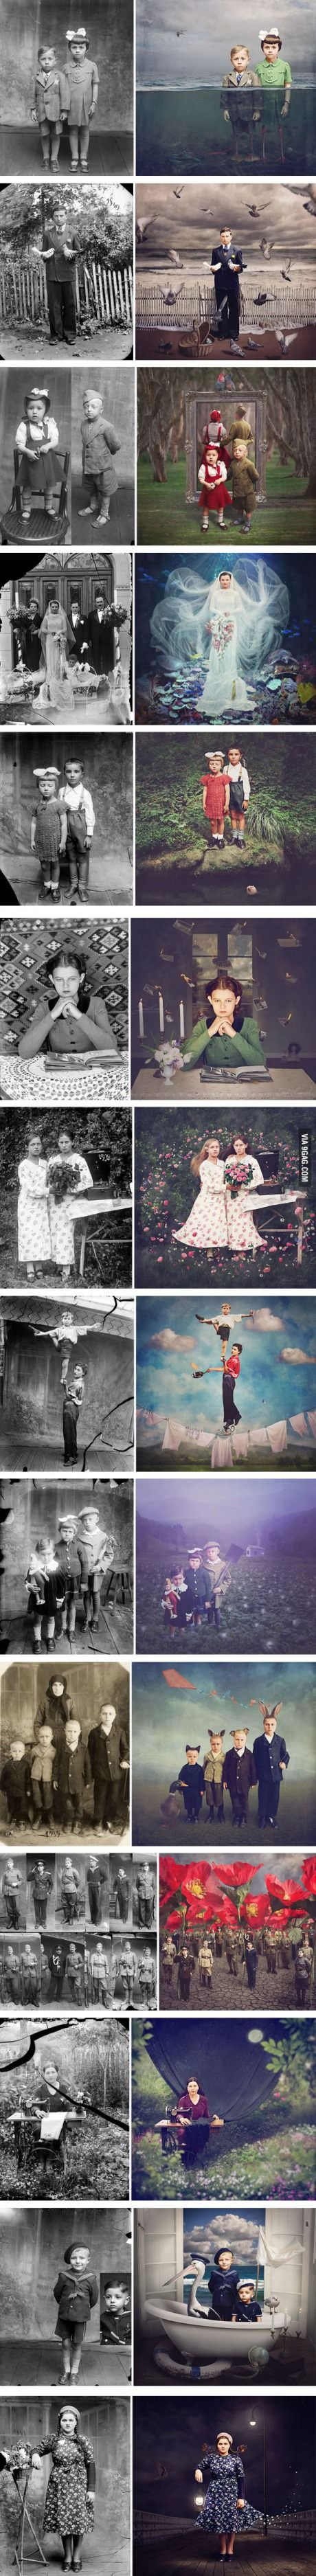 Historic Glass-Plate Photos From Romania Restored And Turned Into Colorful Art (By Jane Long)